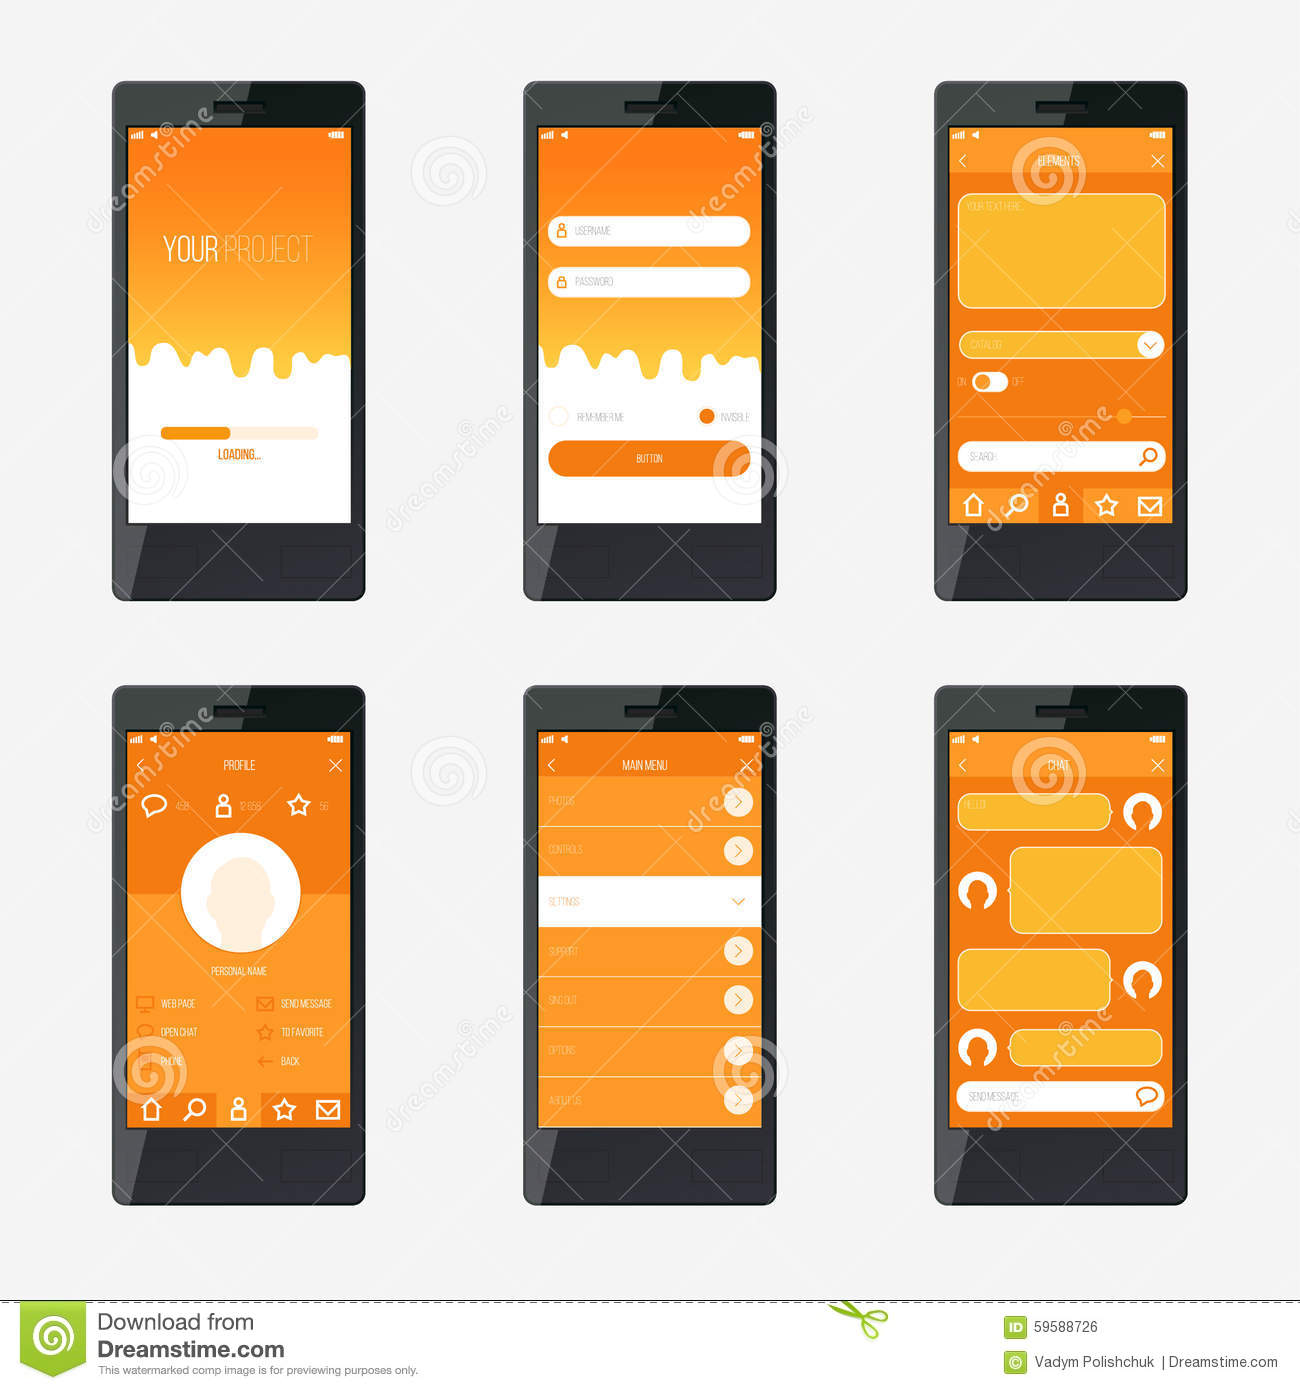 ... mobile application interface design. For website and mobile app